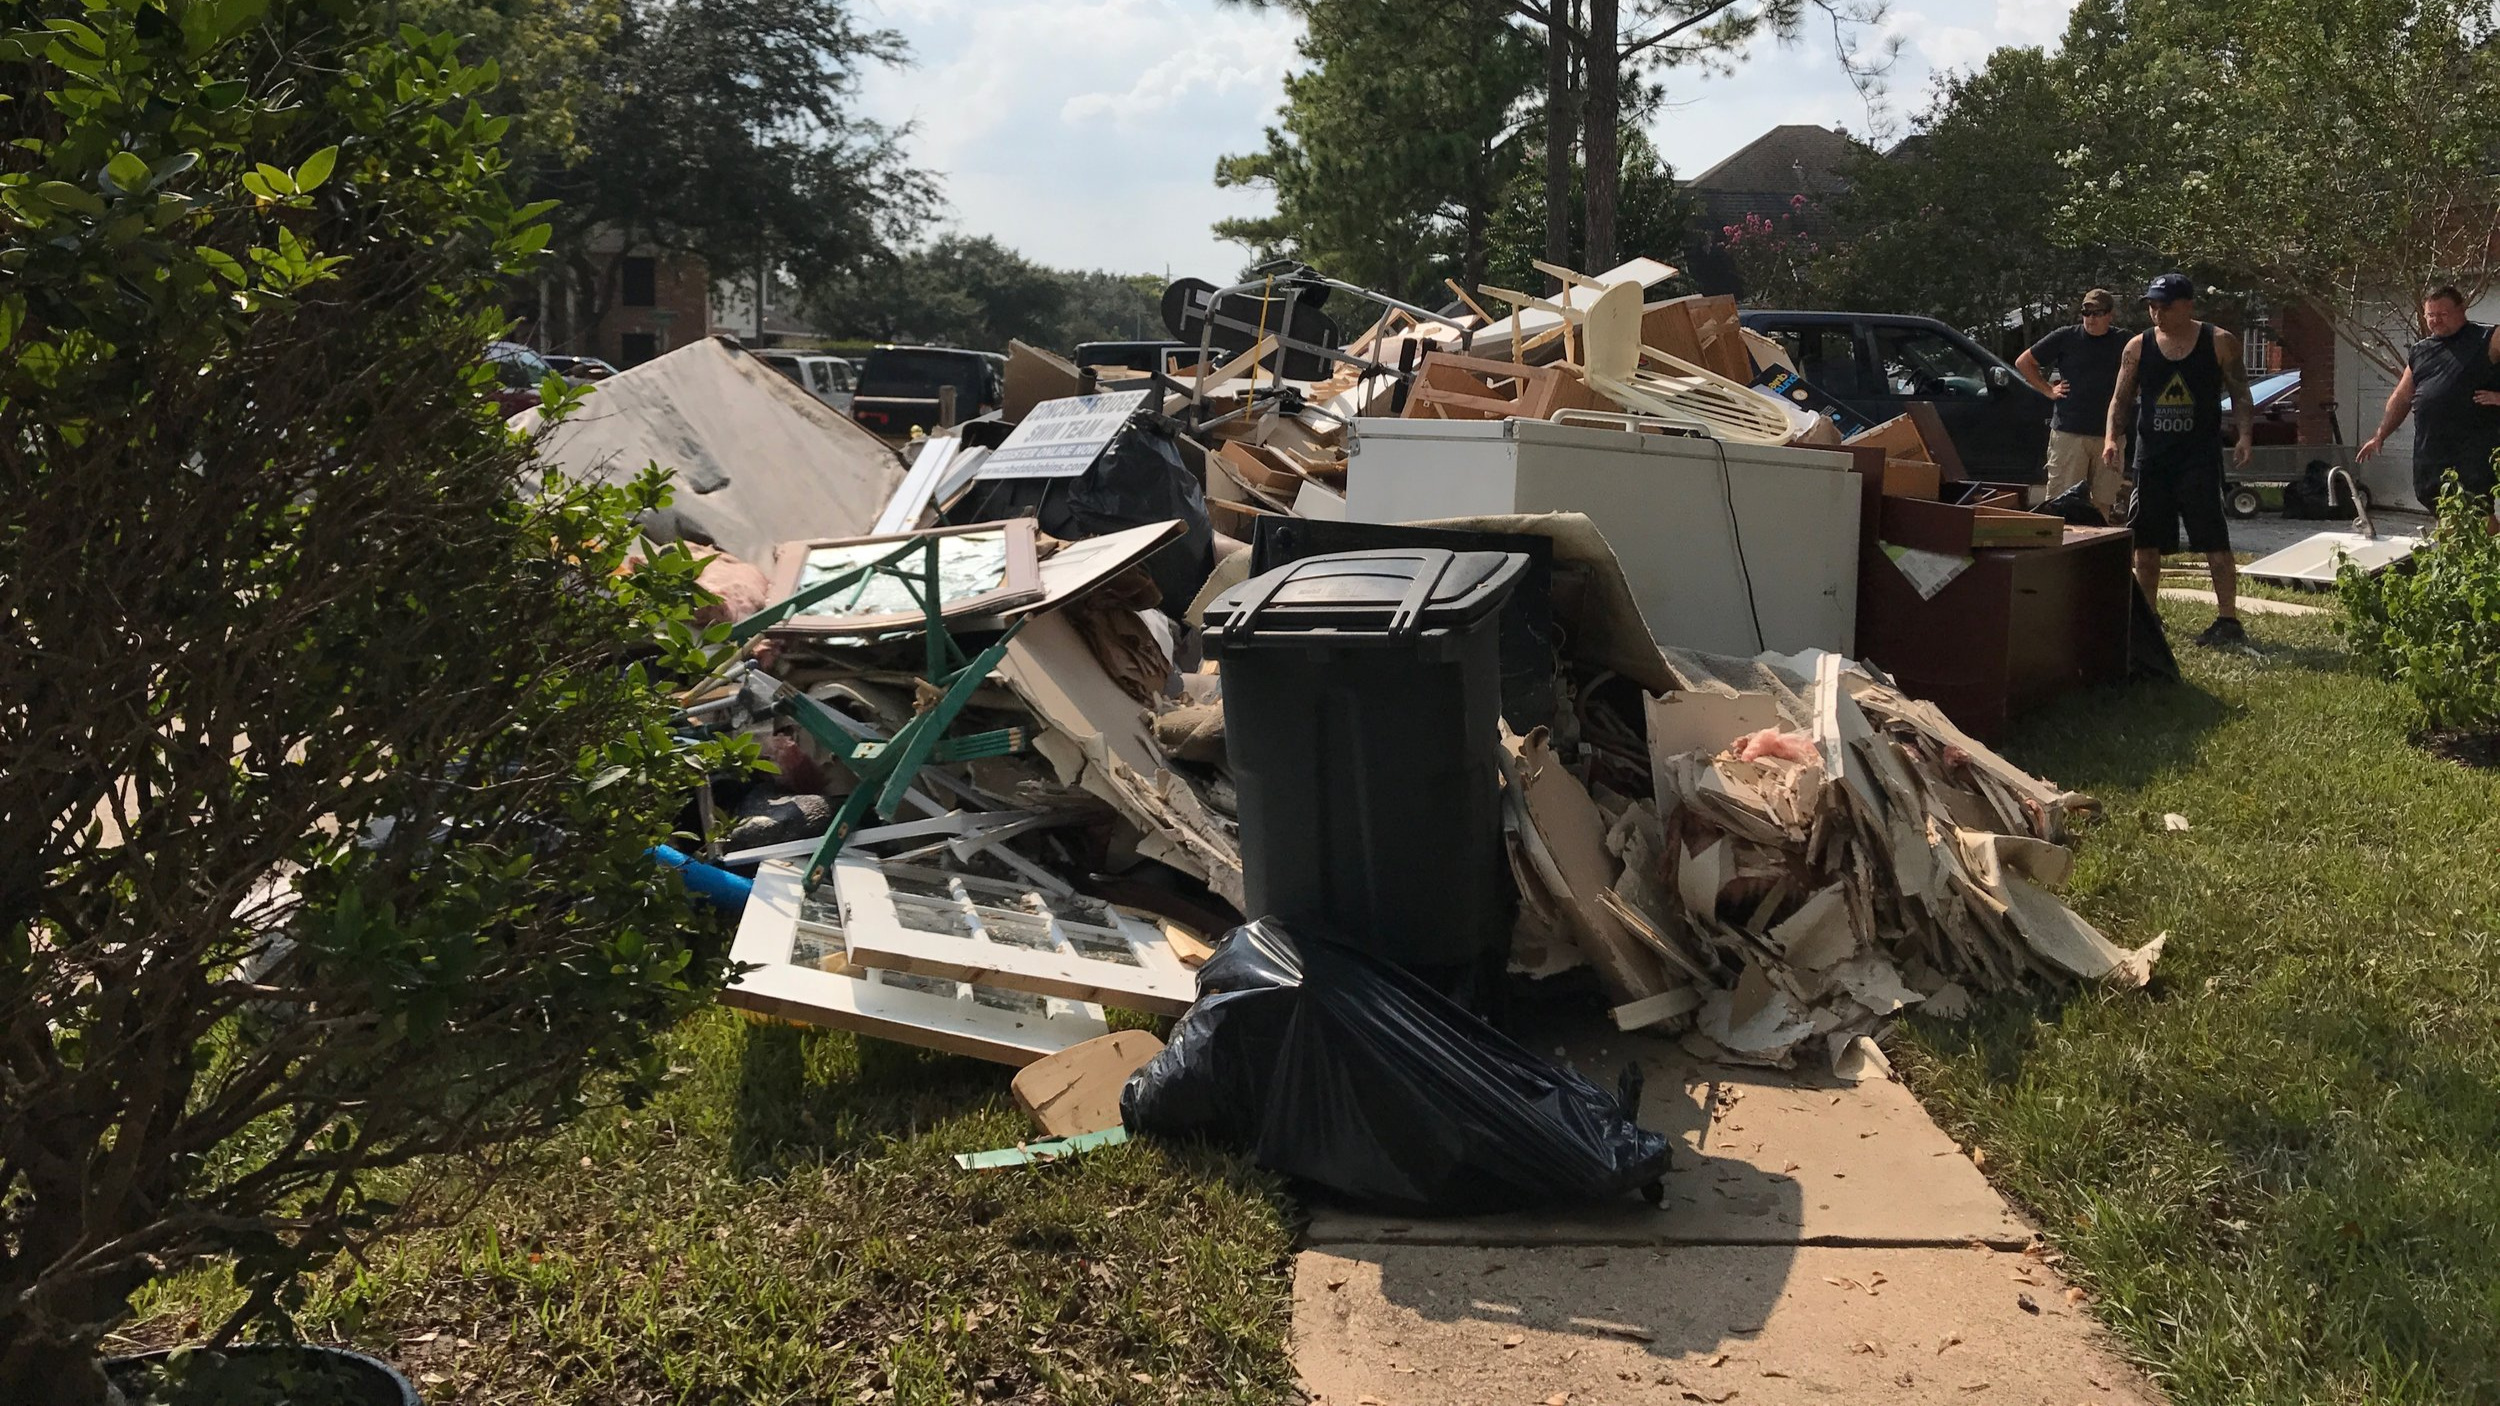 The aftermath of Hurricane Harvey in a Houston suburb. September 4, 2017.